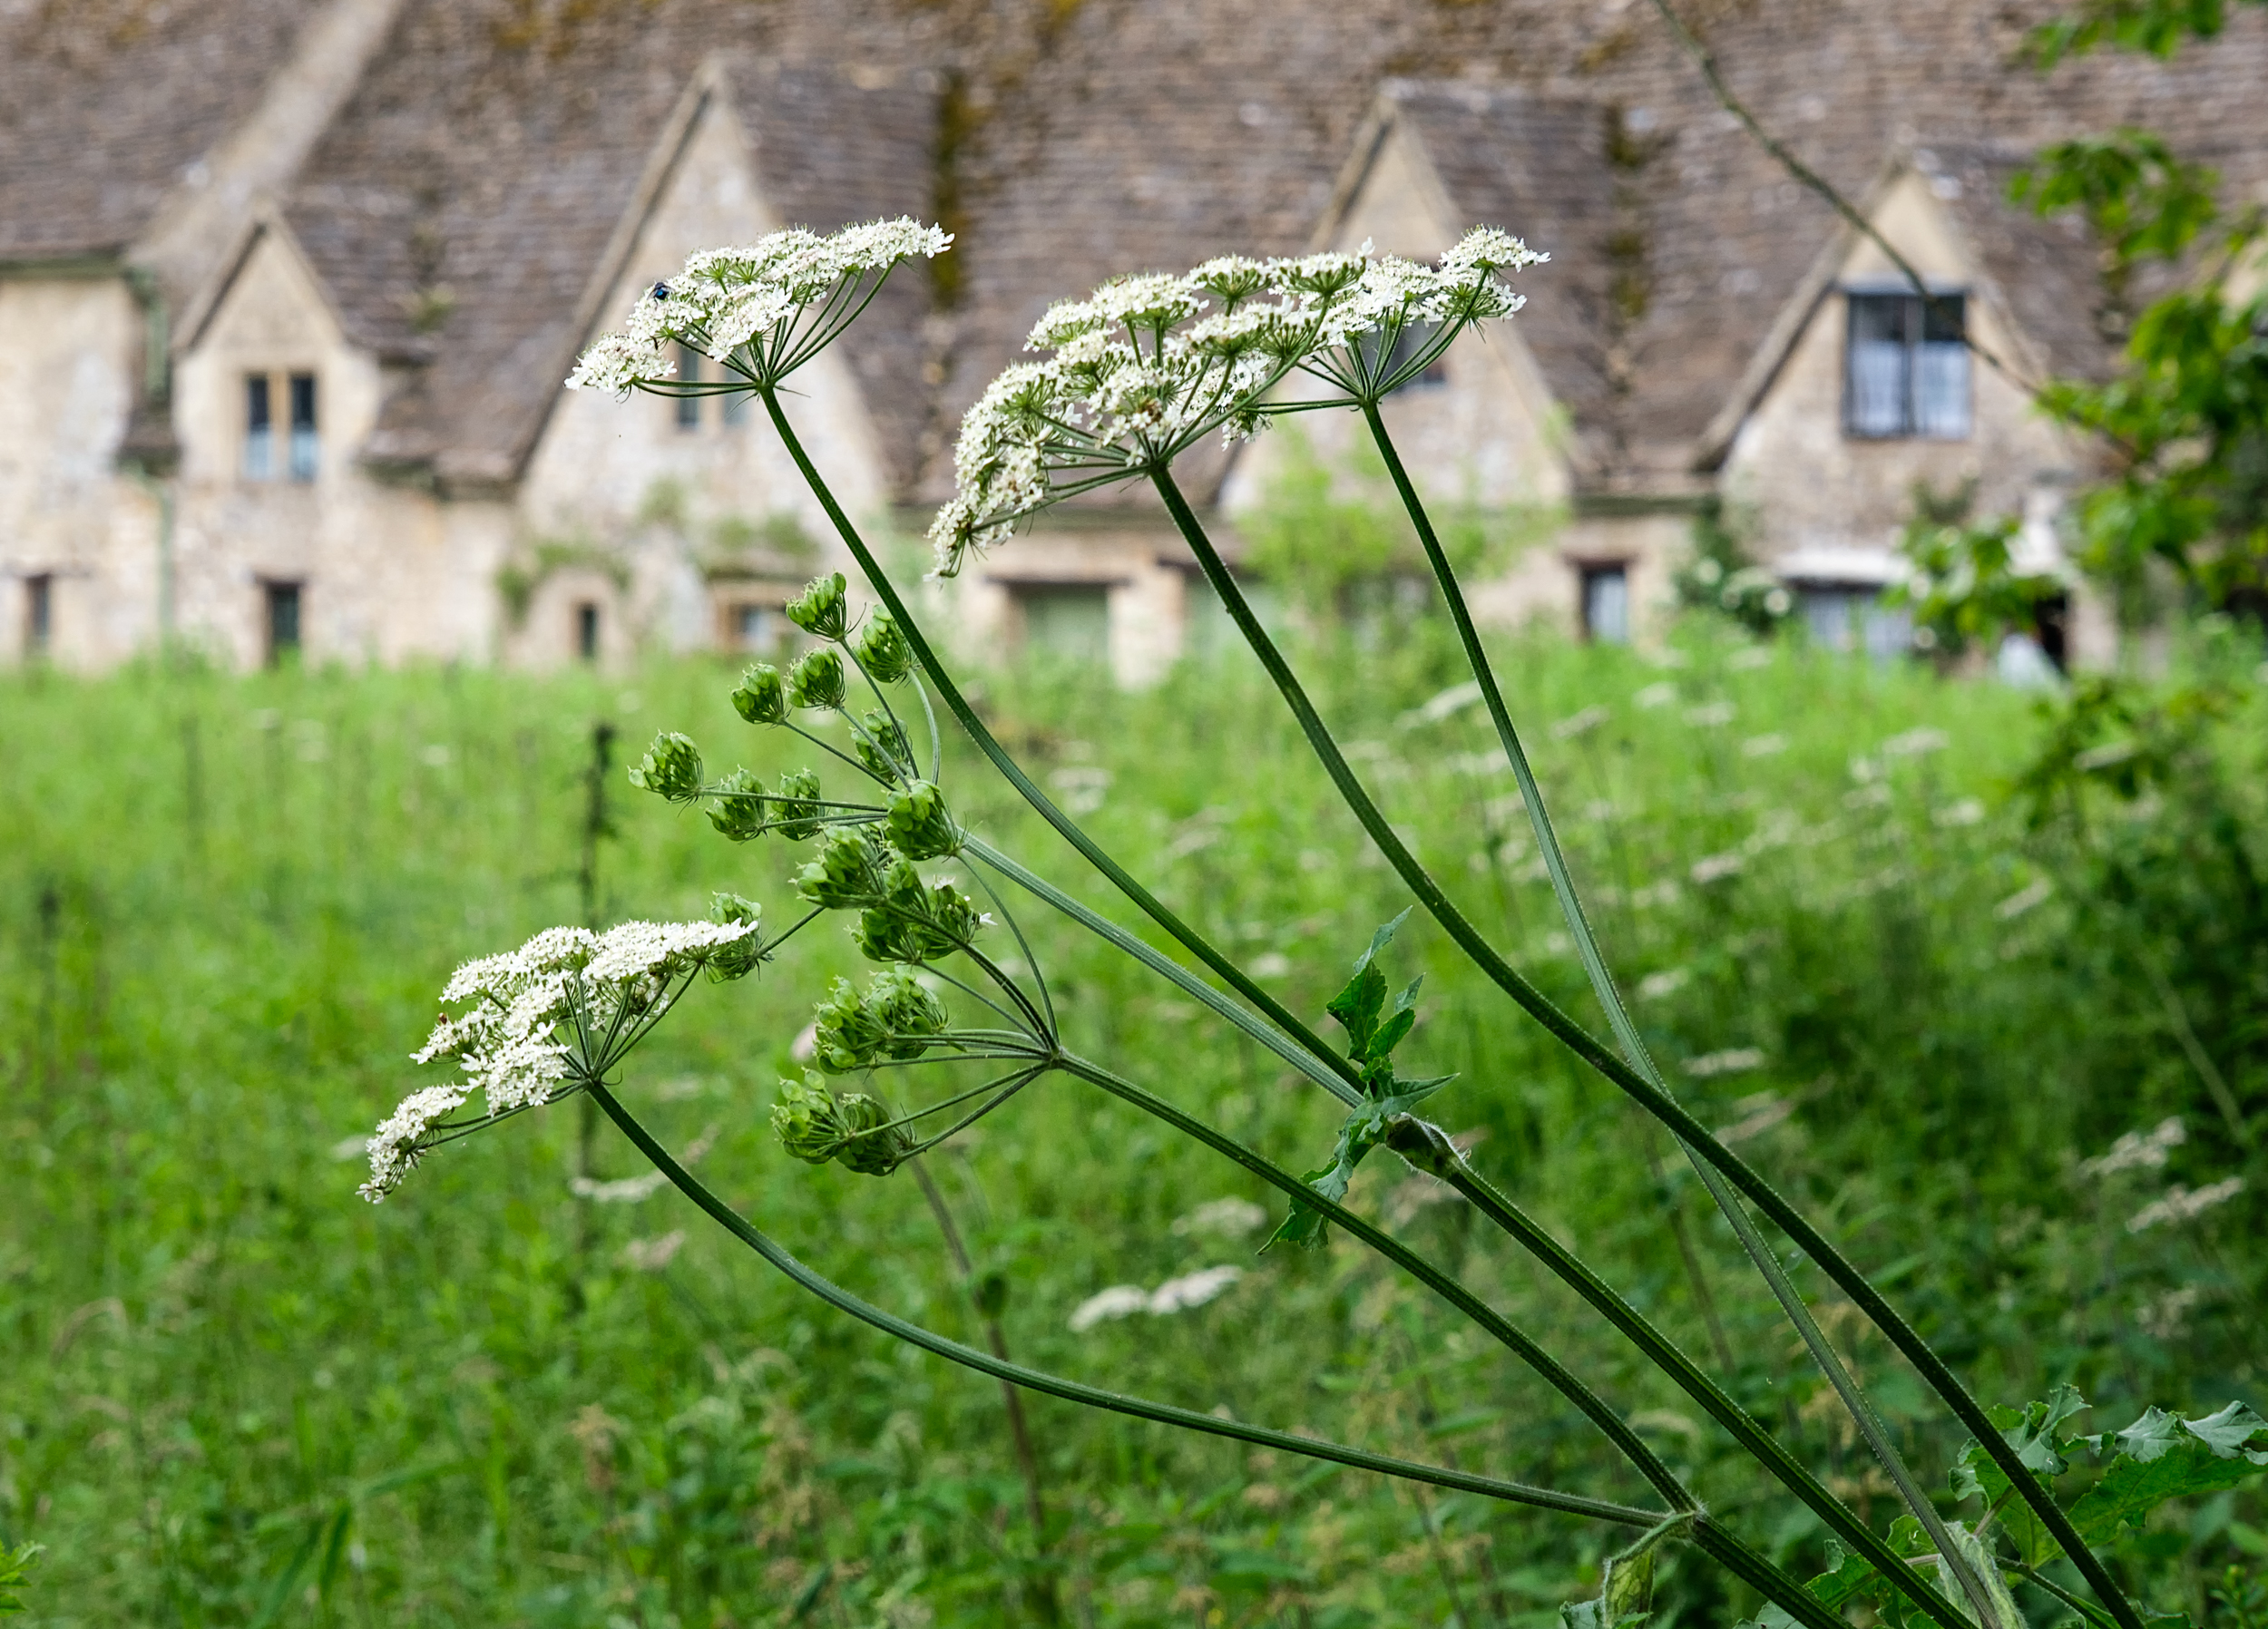 20190619_cotswolds-86-Edit.jpg